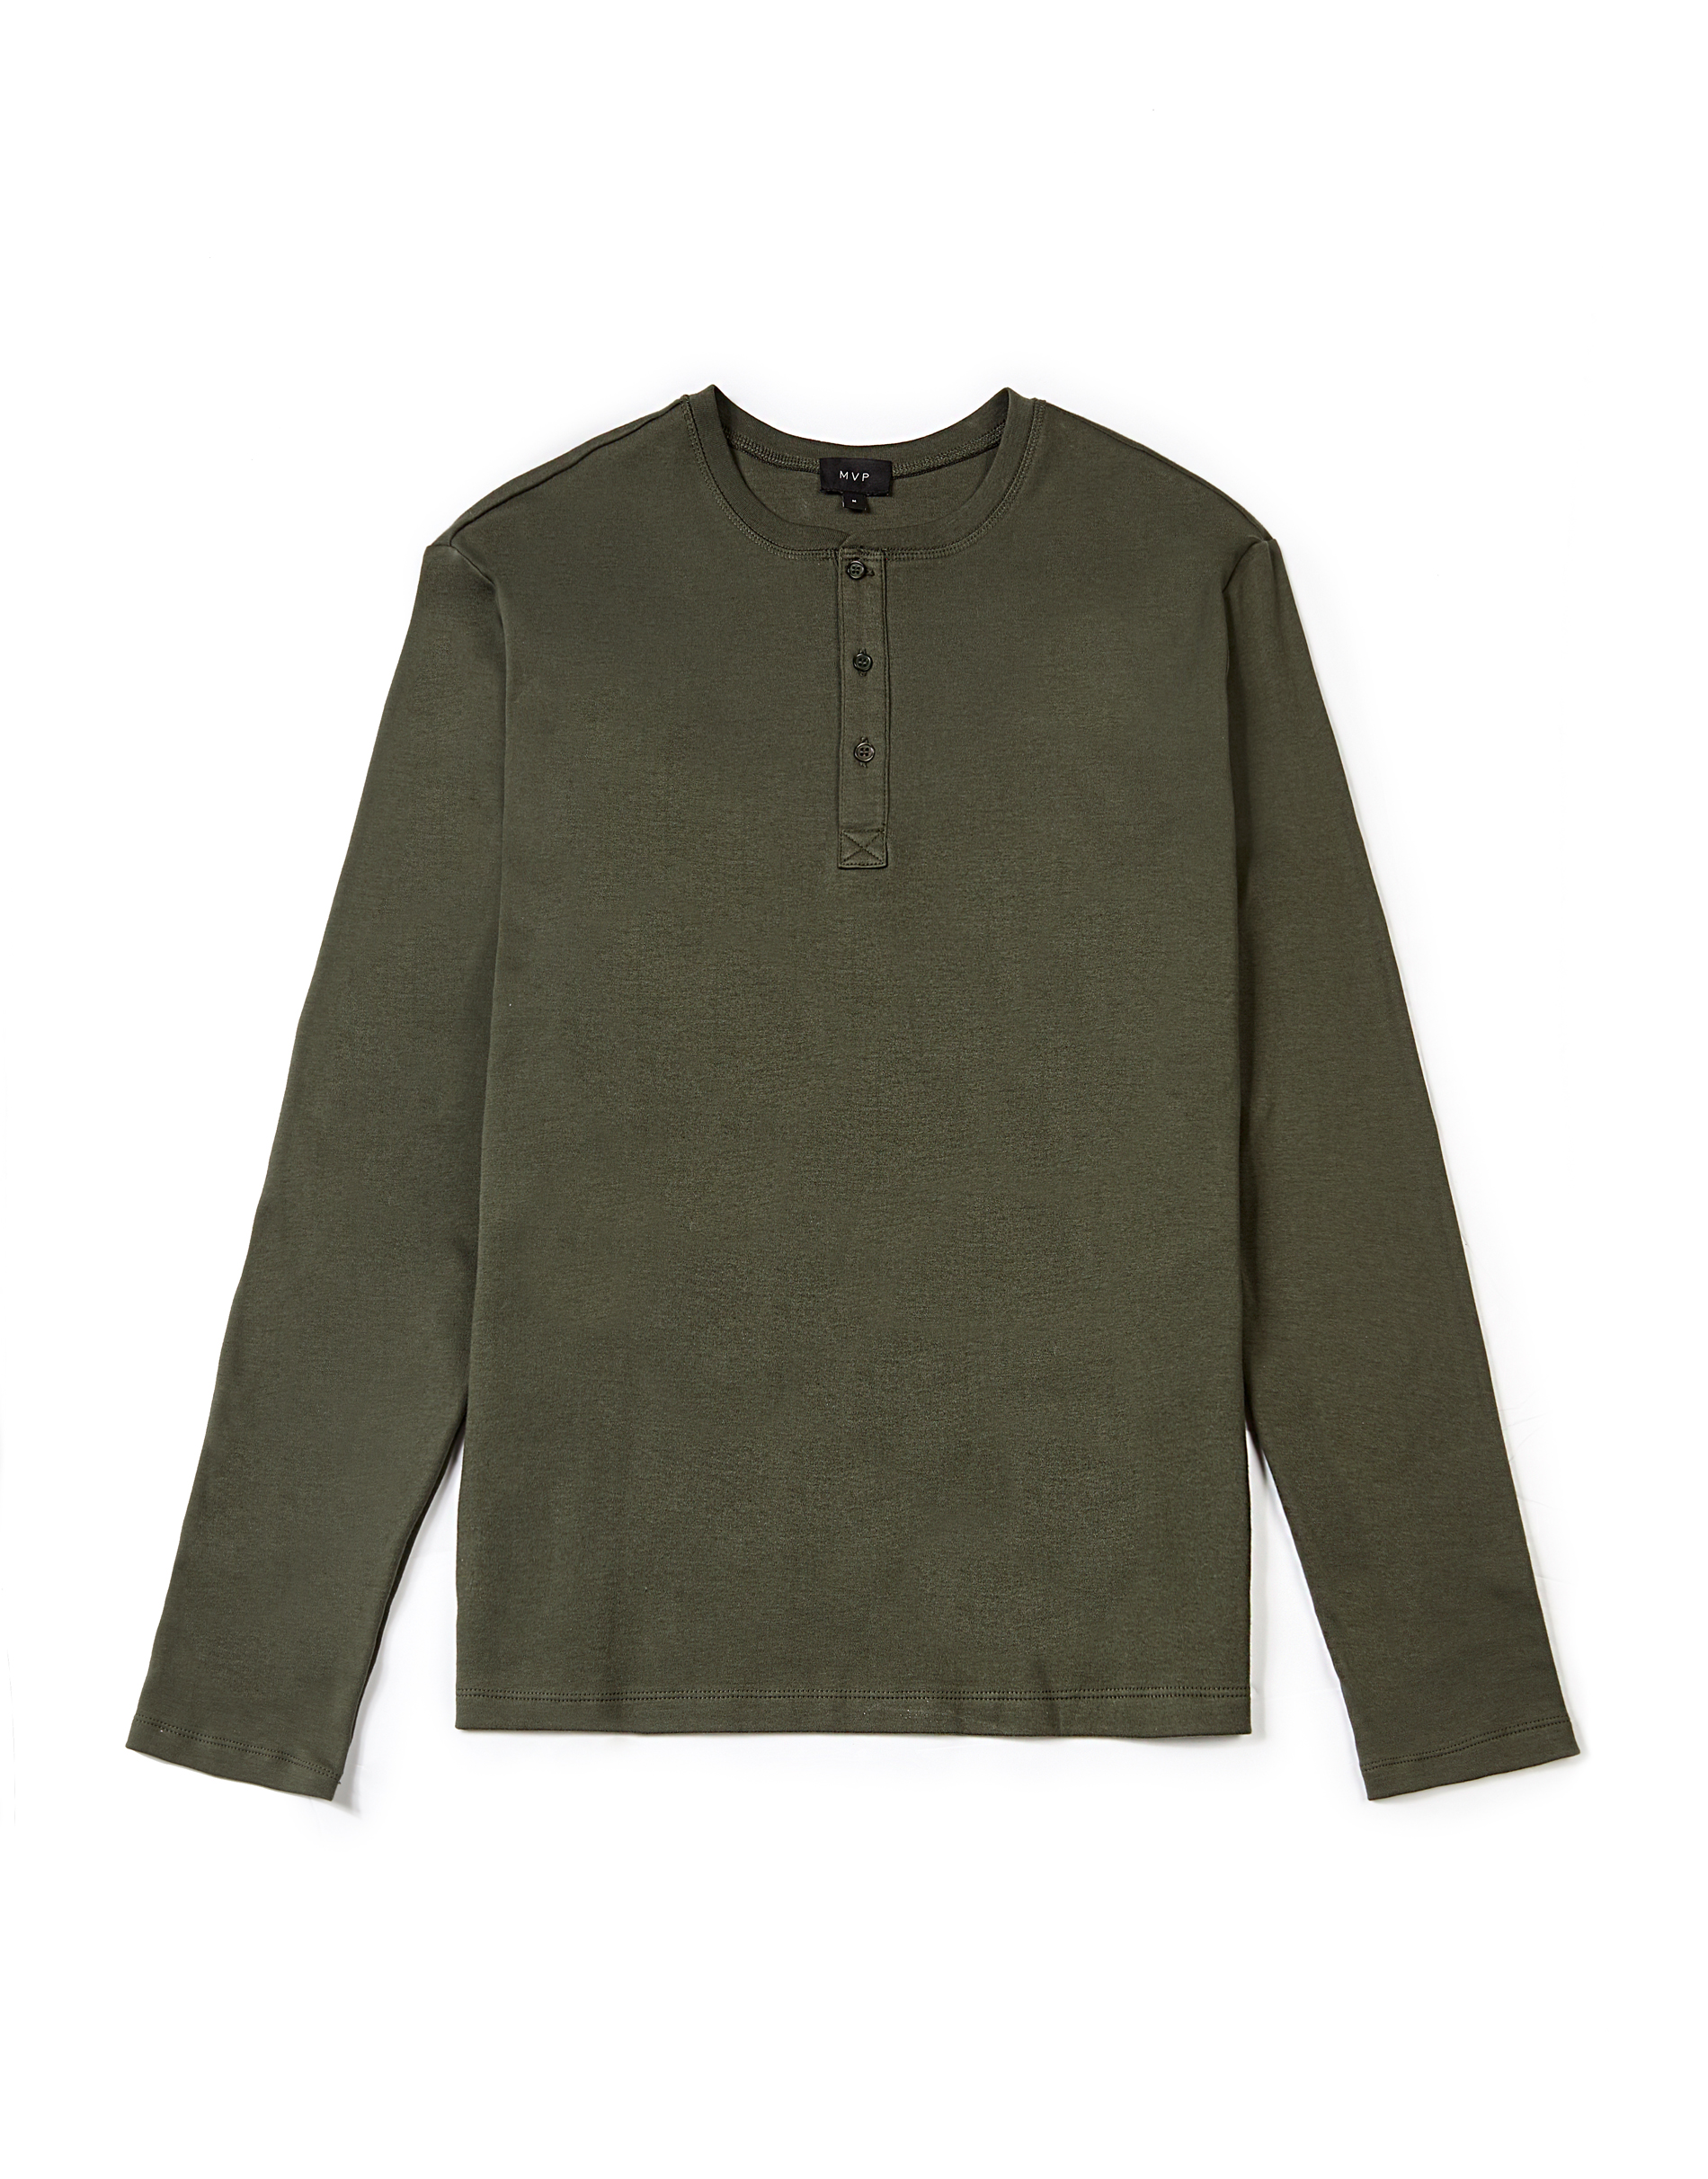 MVP MOSS GREEN Romford Cotton Henley Top